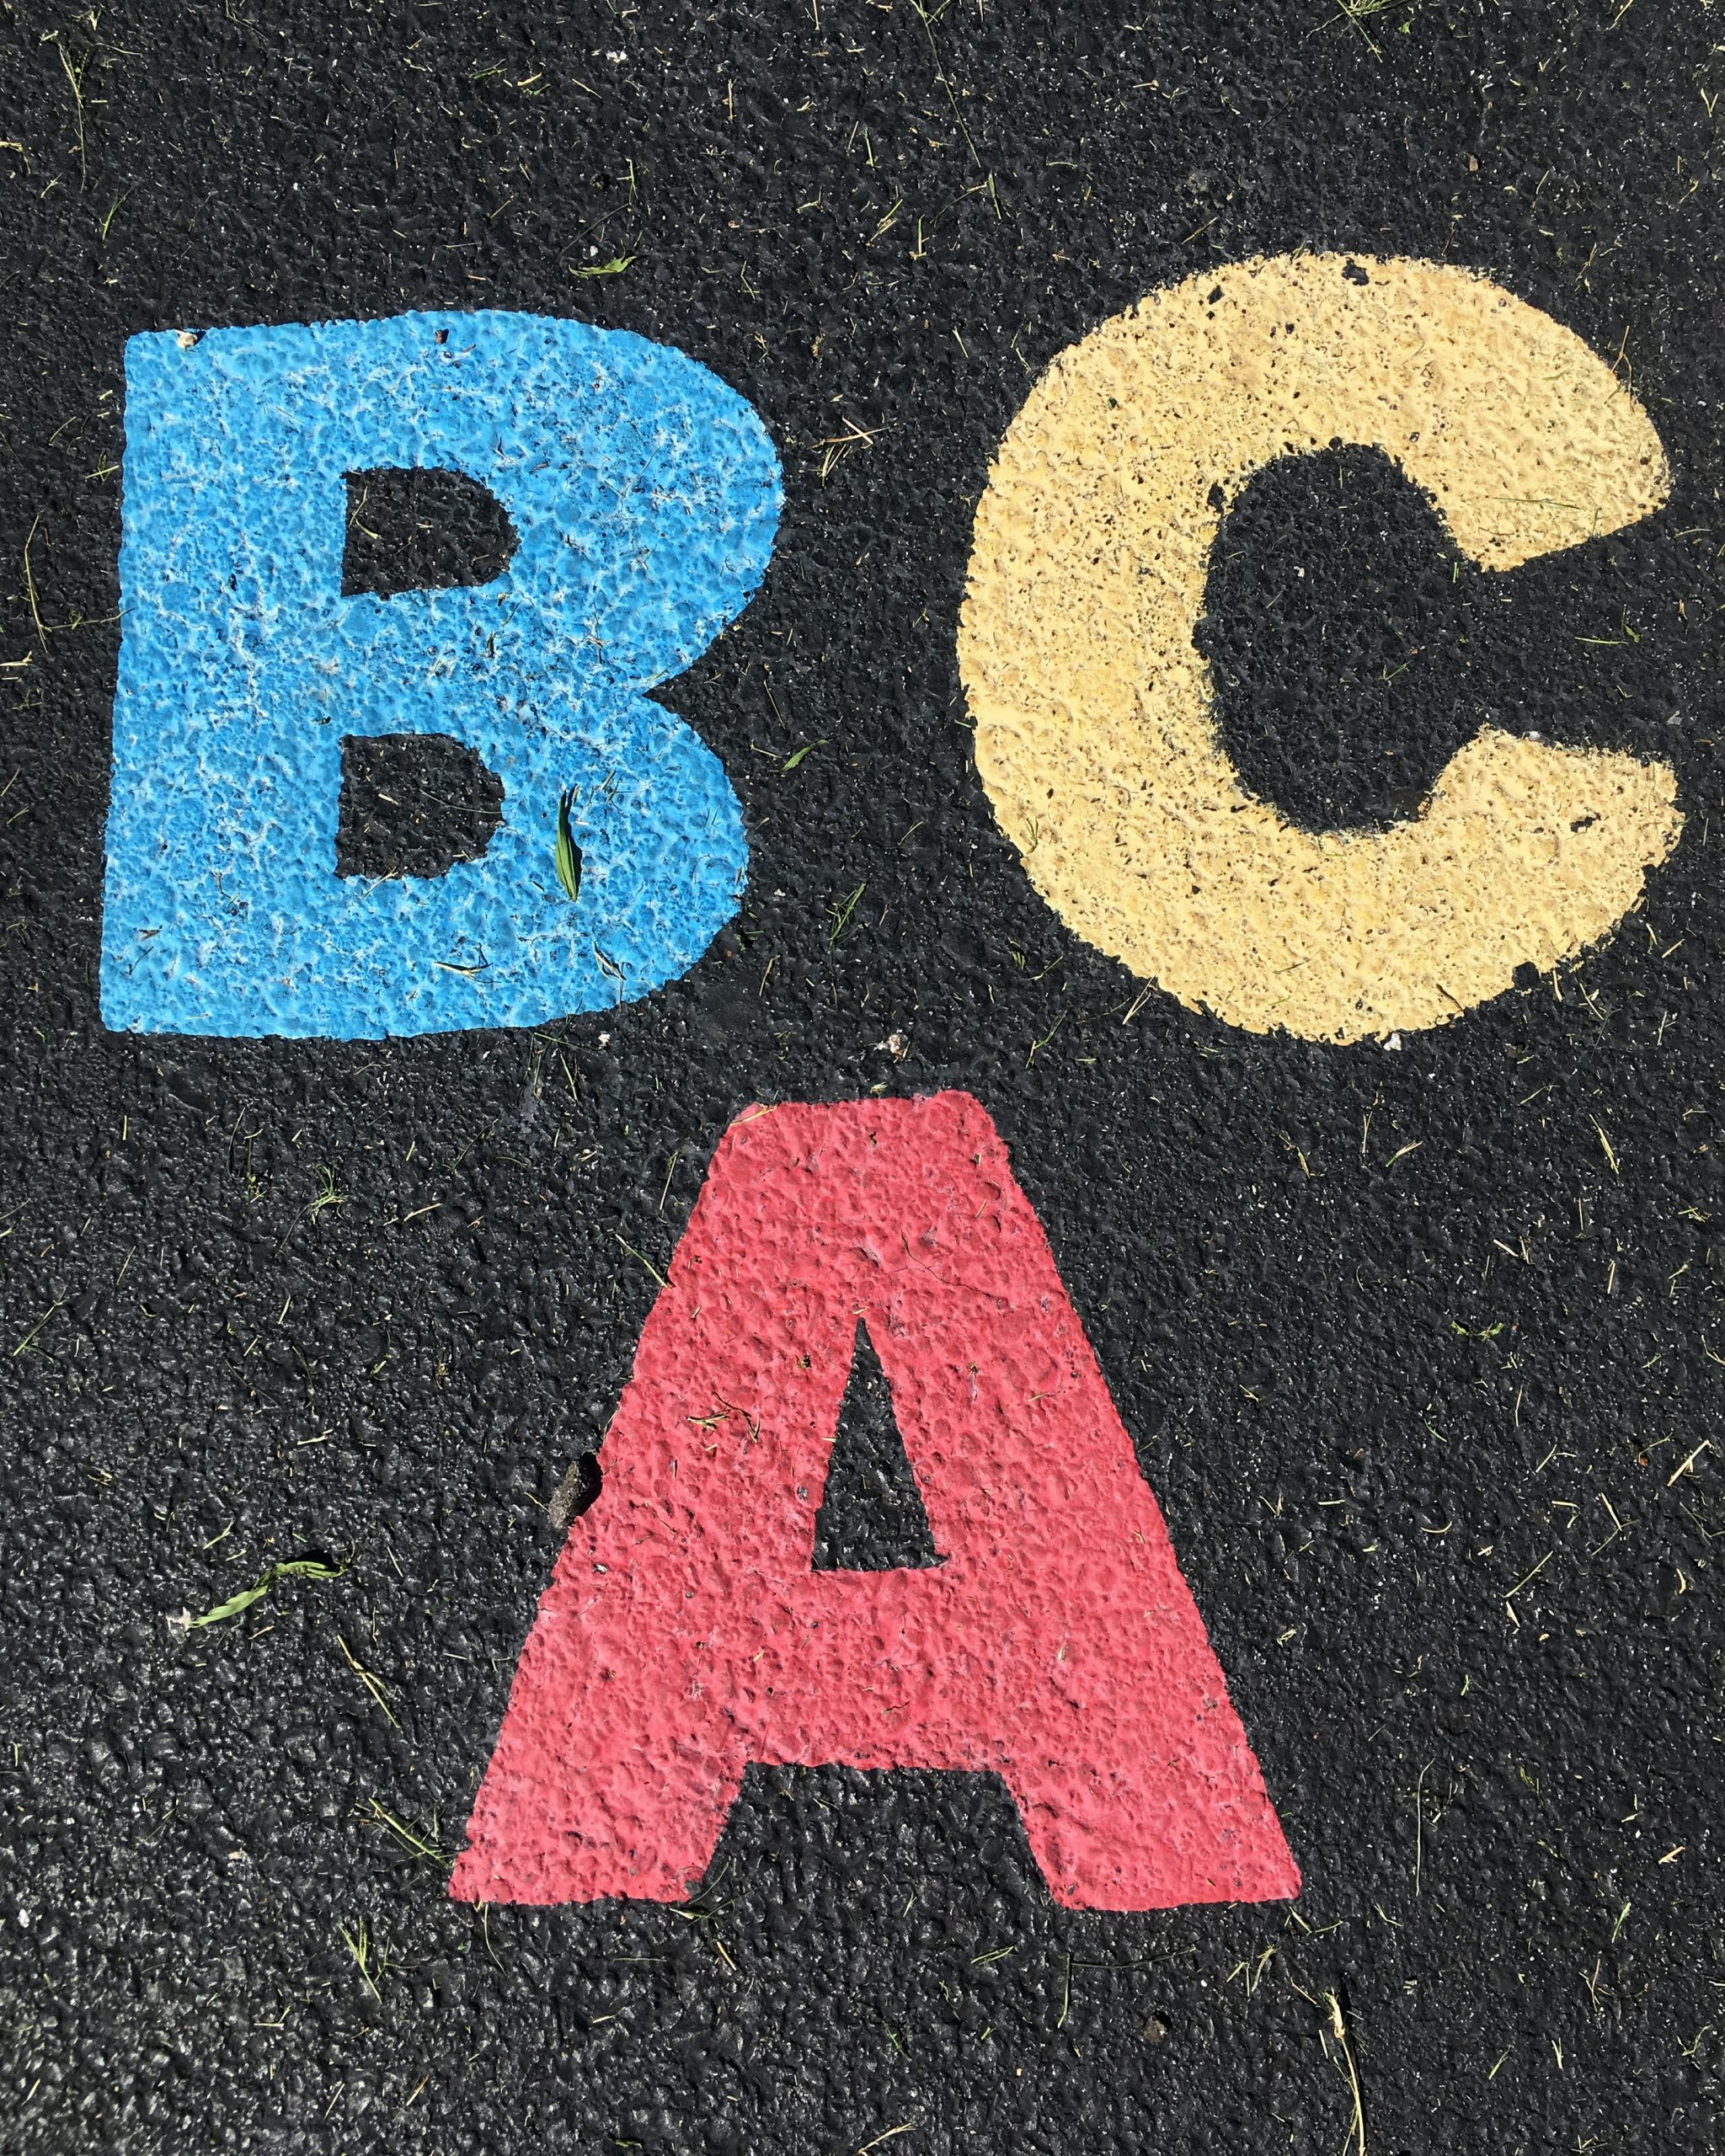 the letters A, B and C in block letters